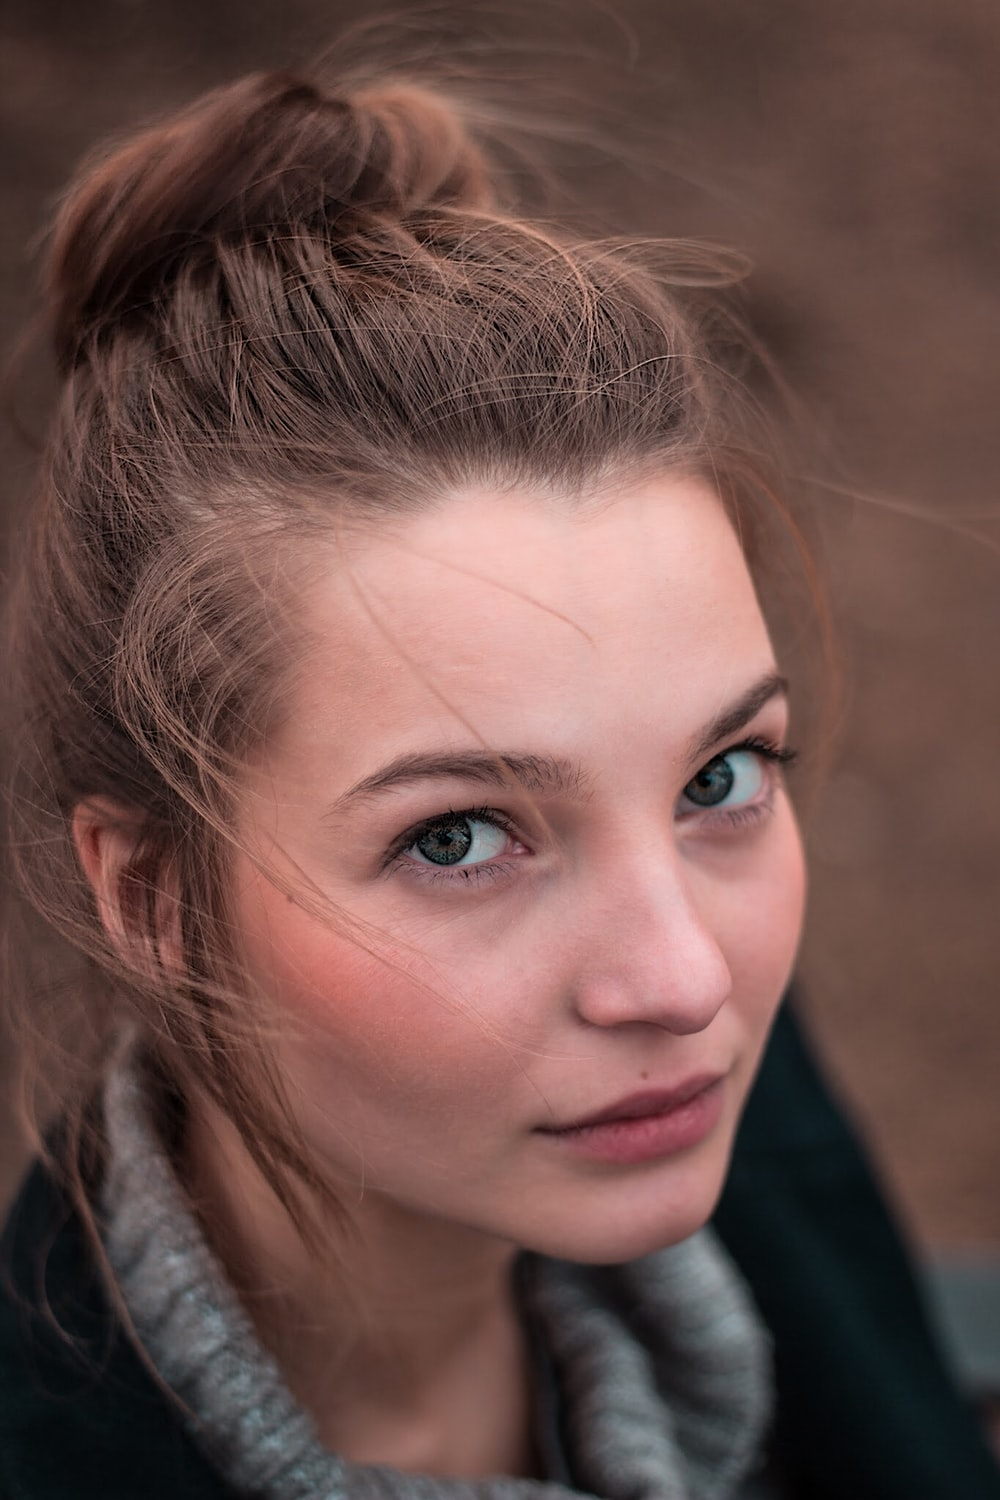 shallow focus photo of woman face